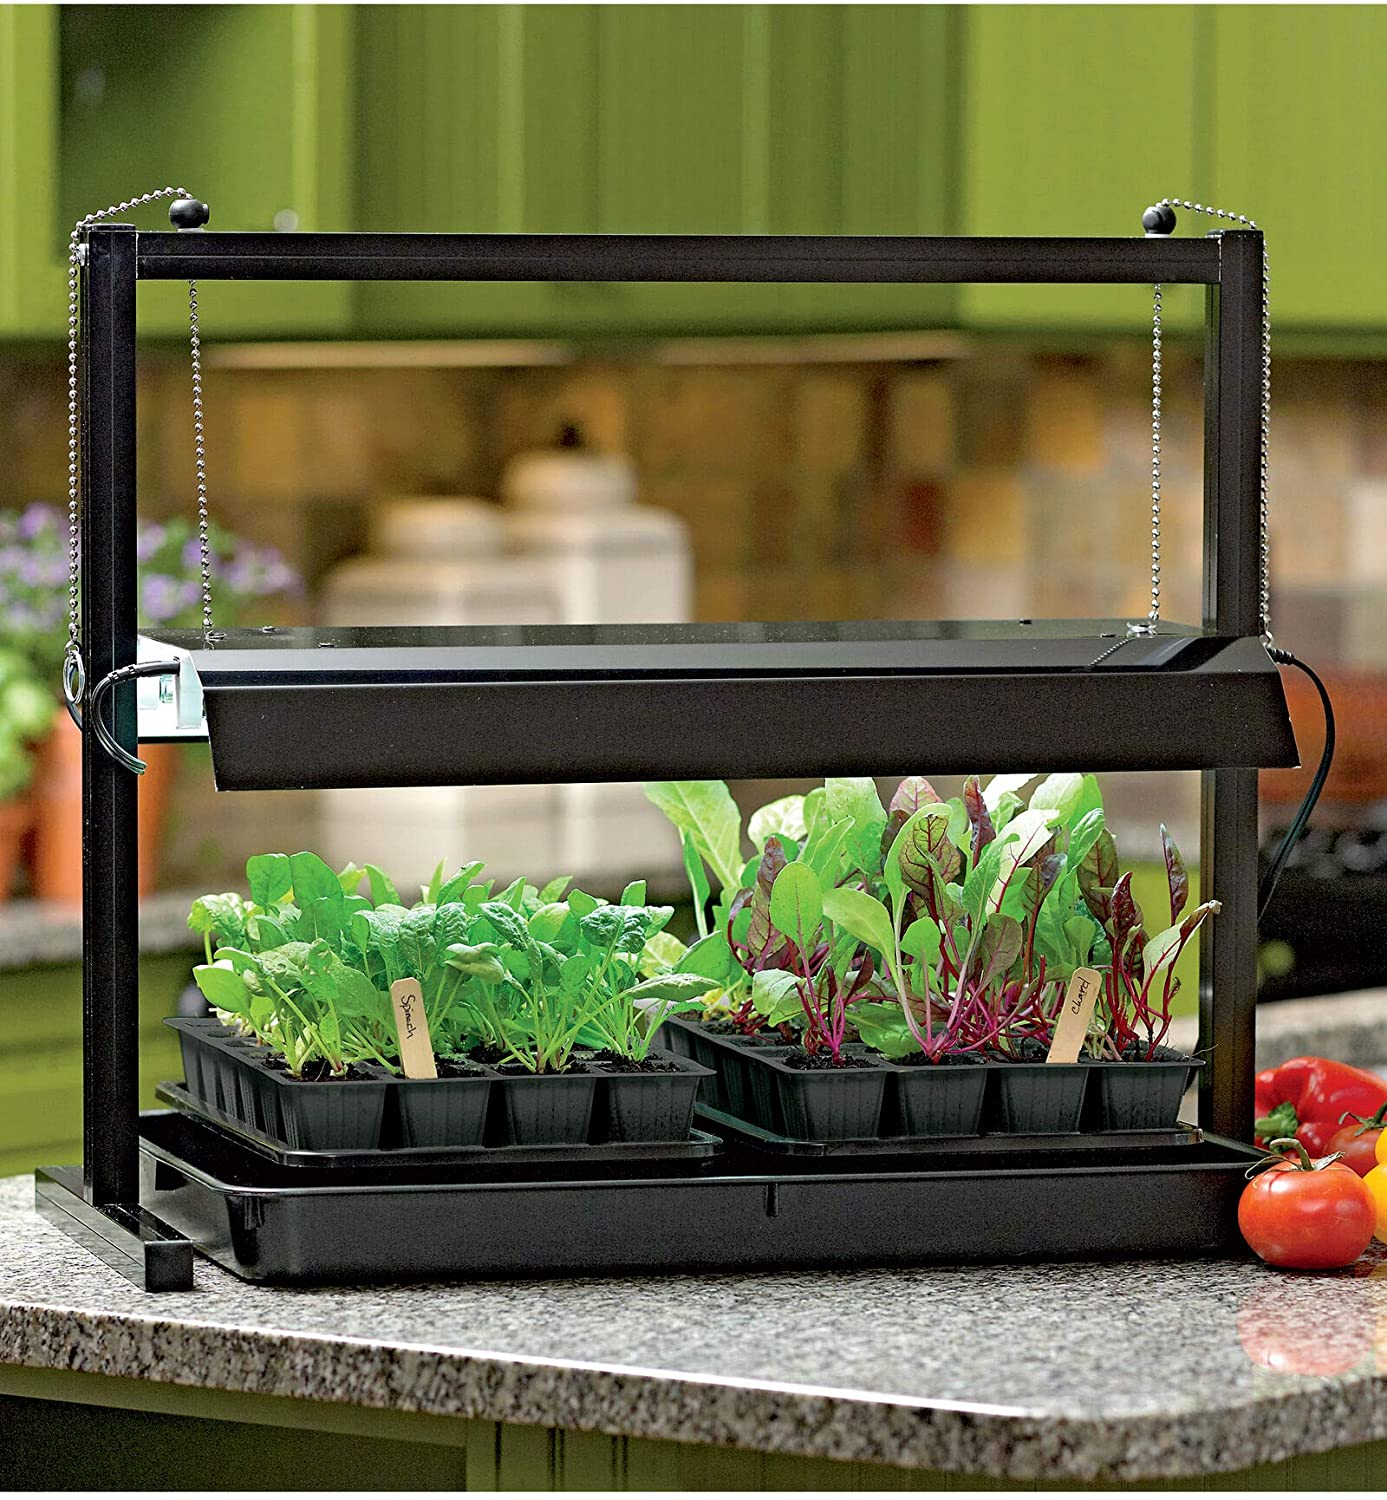 Compact hydroponic countertop grow light